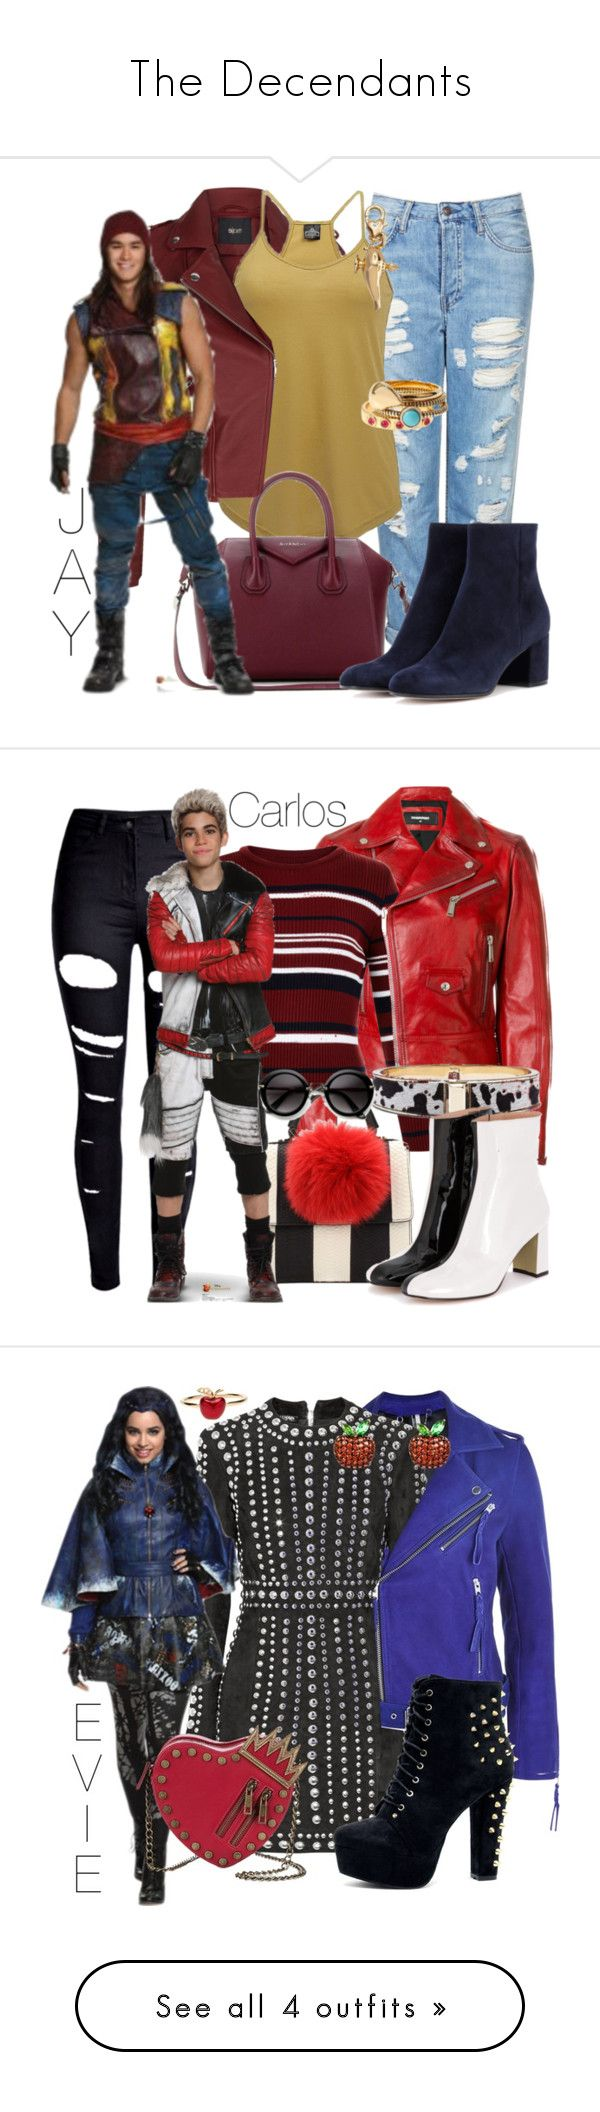 """The Decendants"" by shrimp492 ❤ liked on Polyvore featuring Maje, Topshop, Angie, Diane Von Furstenberg, Disney, Givenchy, Gianvito Rossi, disney, disneybound and Dsquared2"